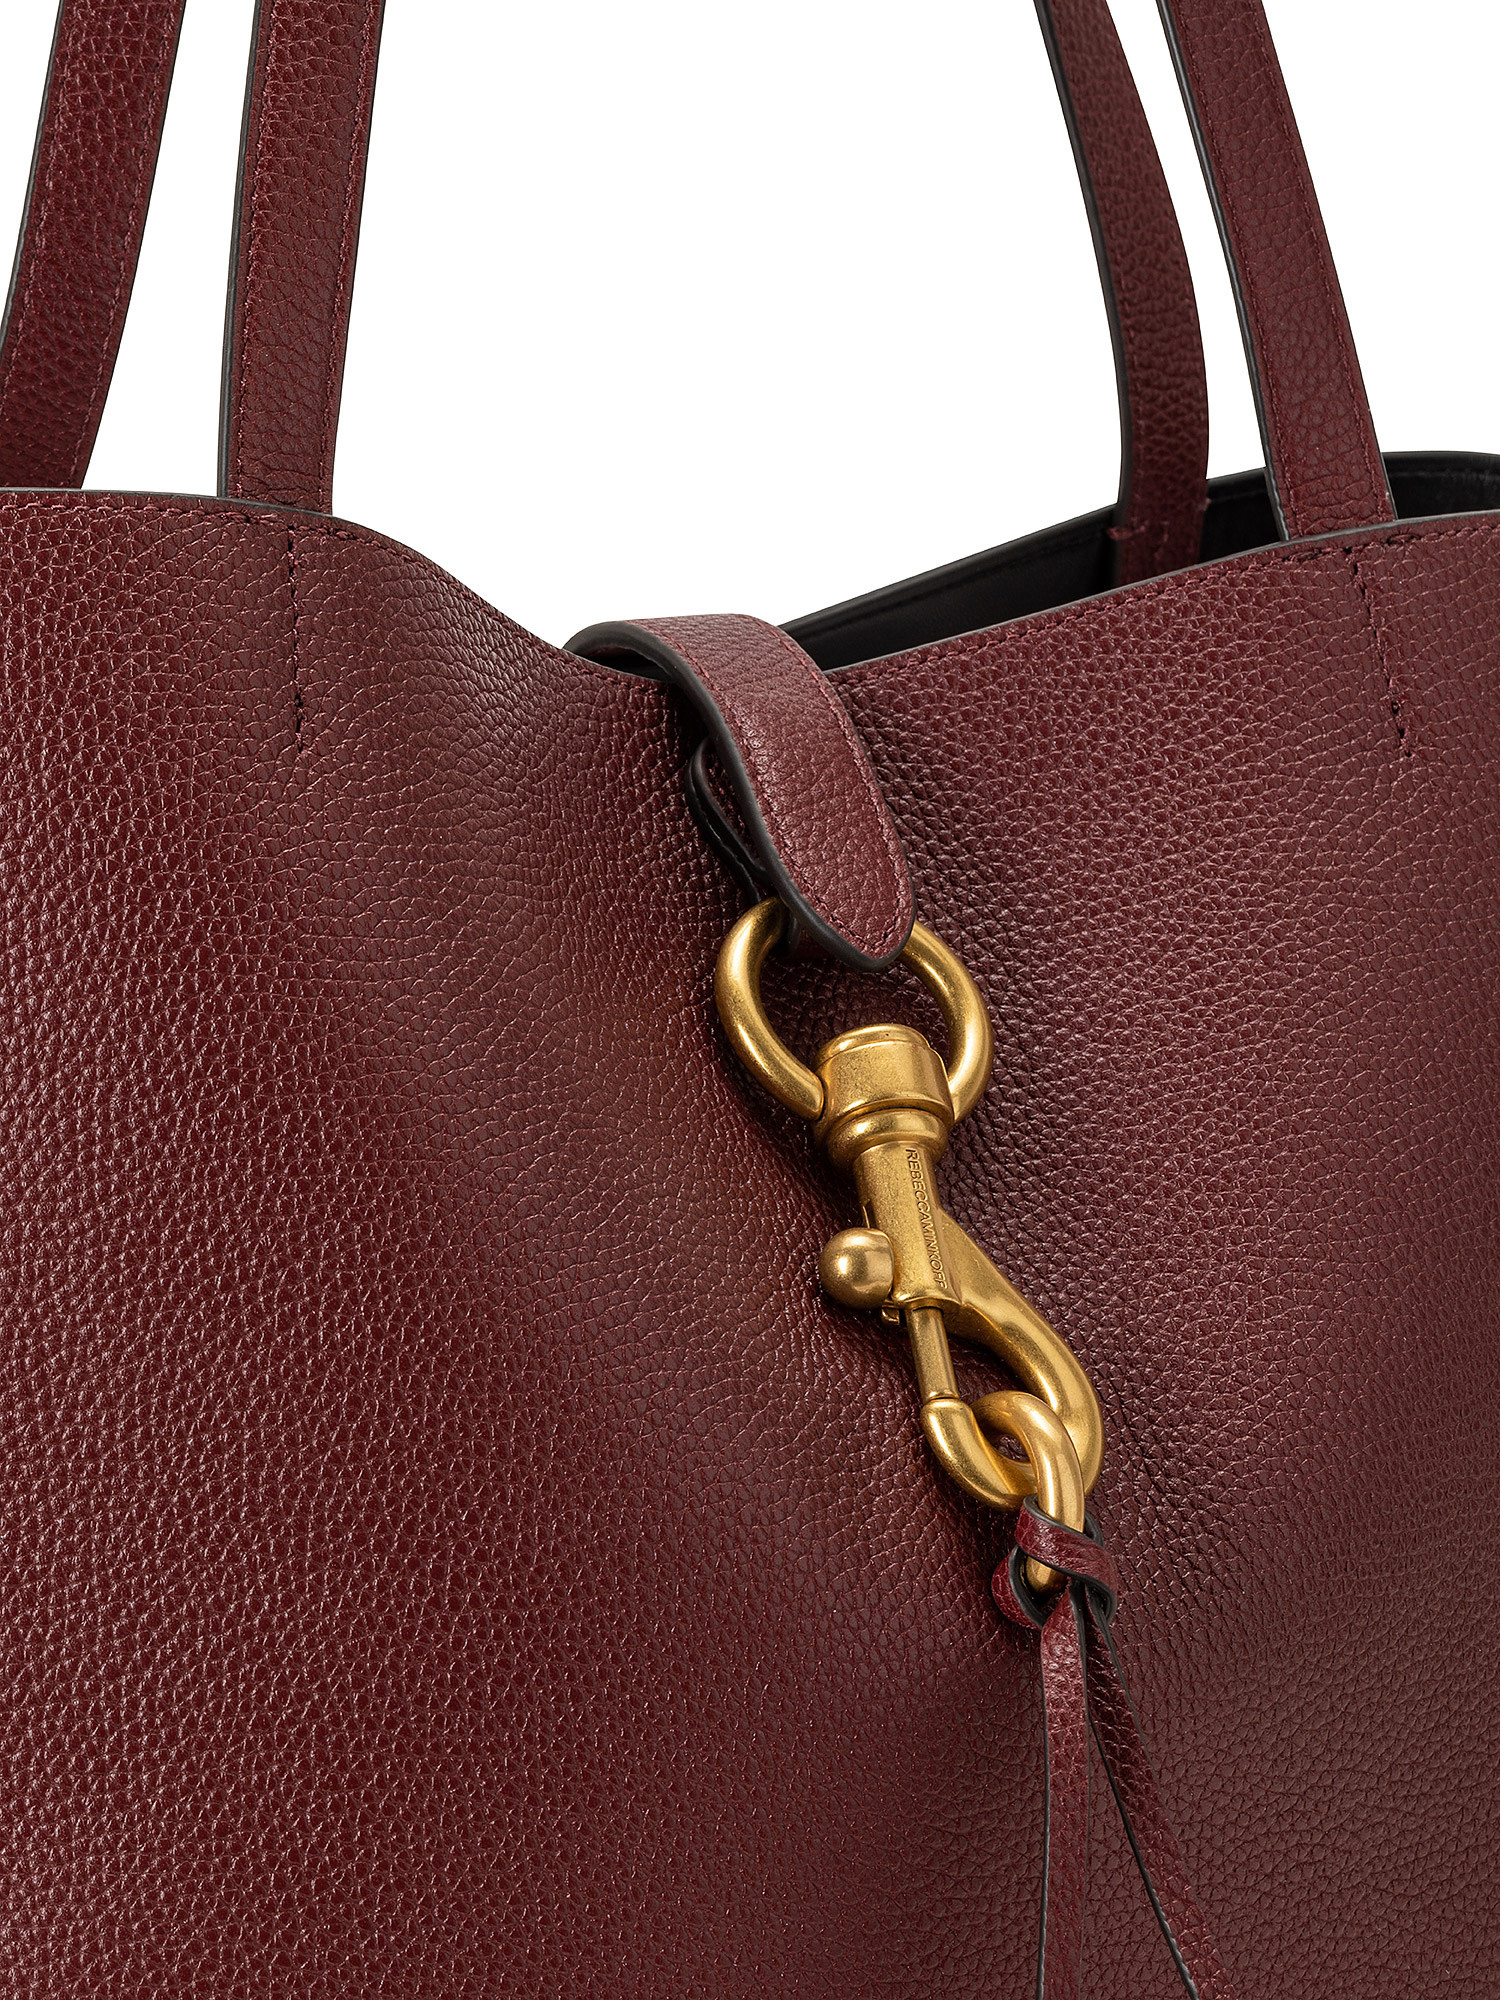 Megan Tote, Rosso ciliegia, large image number 2